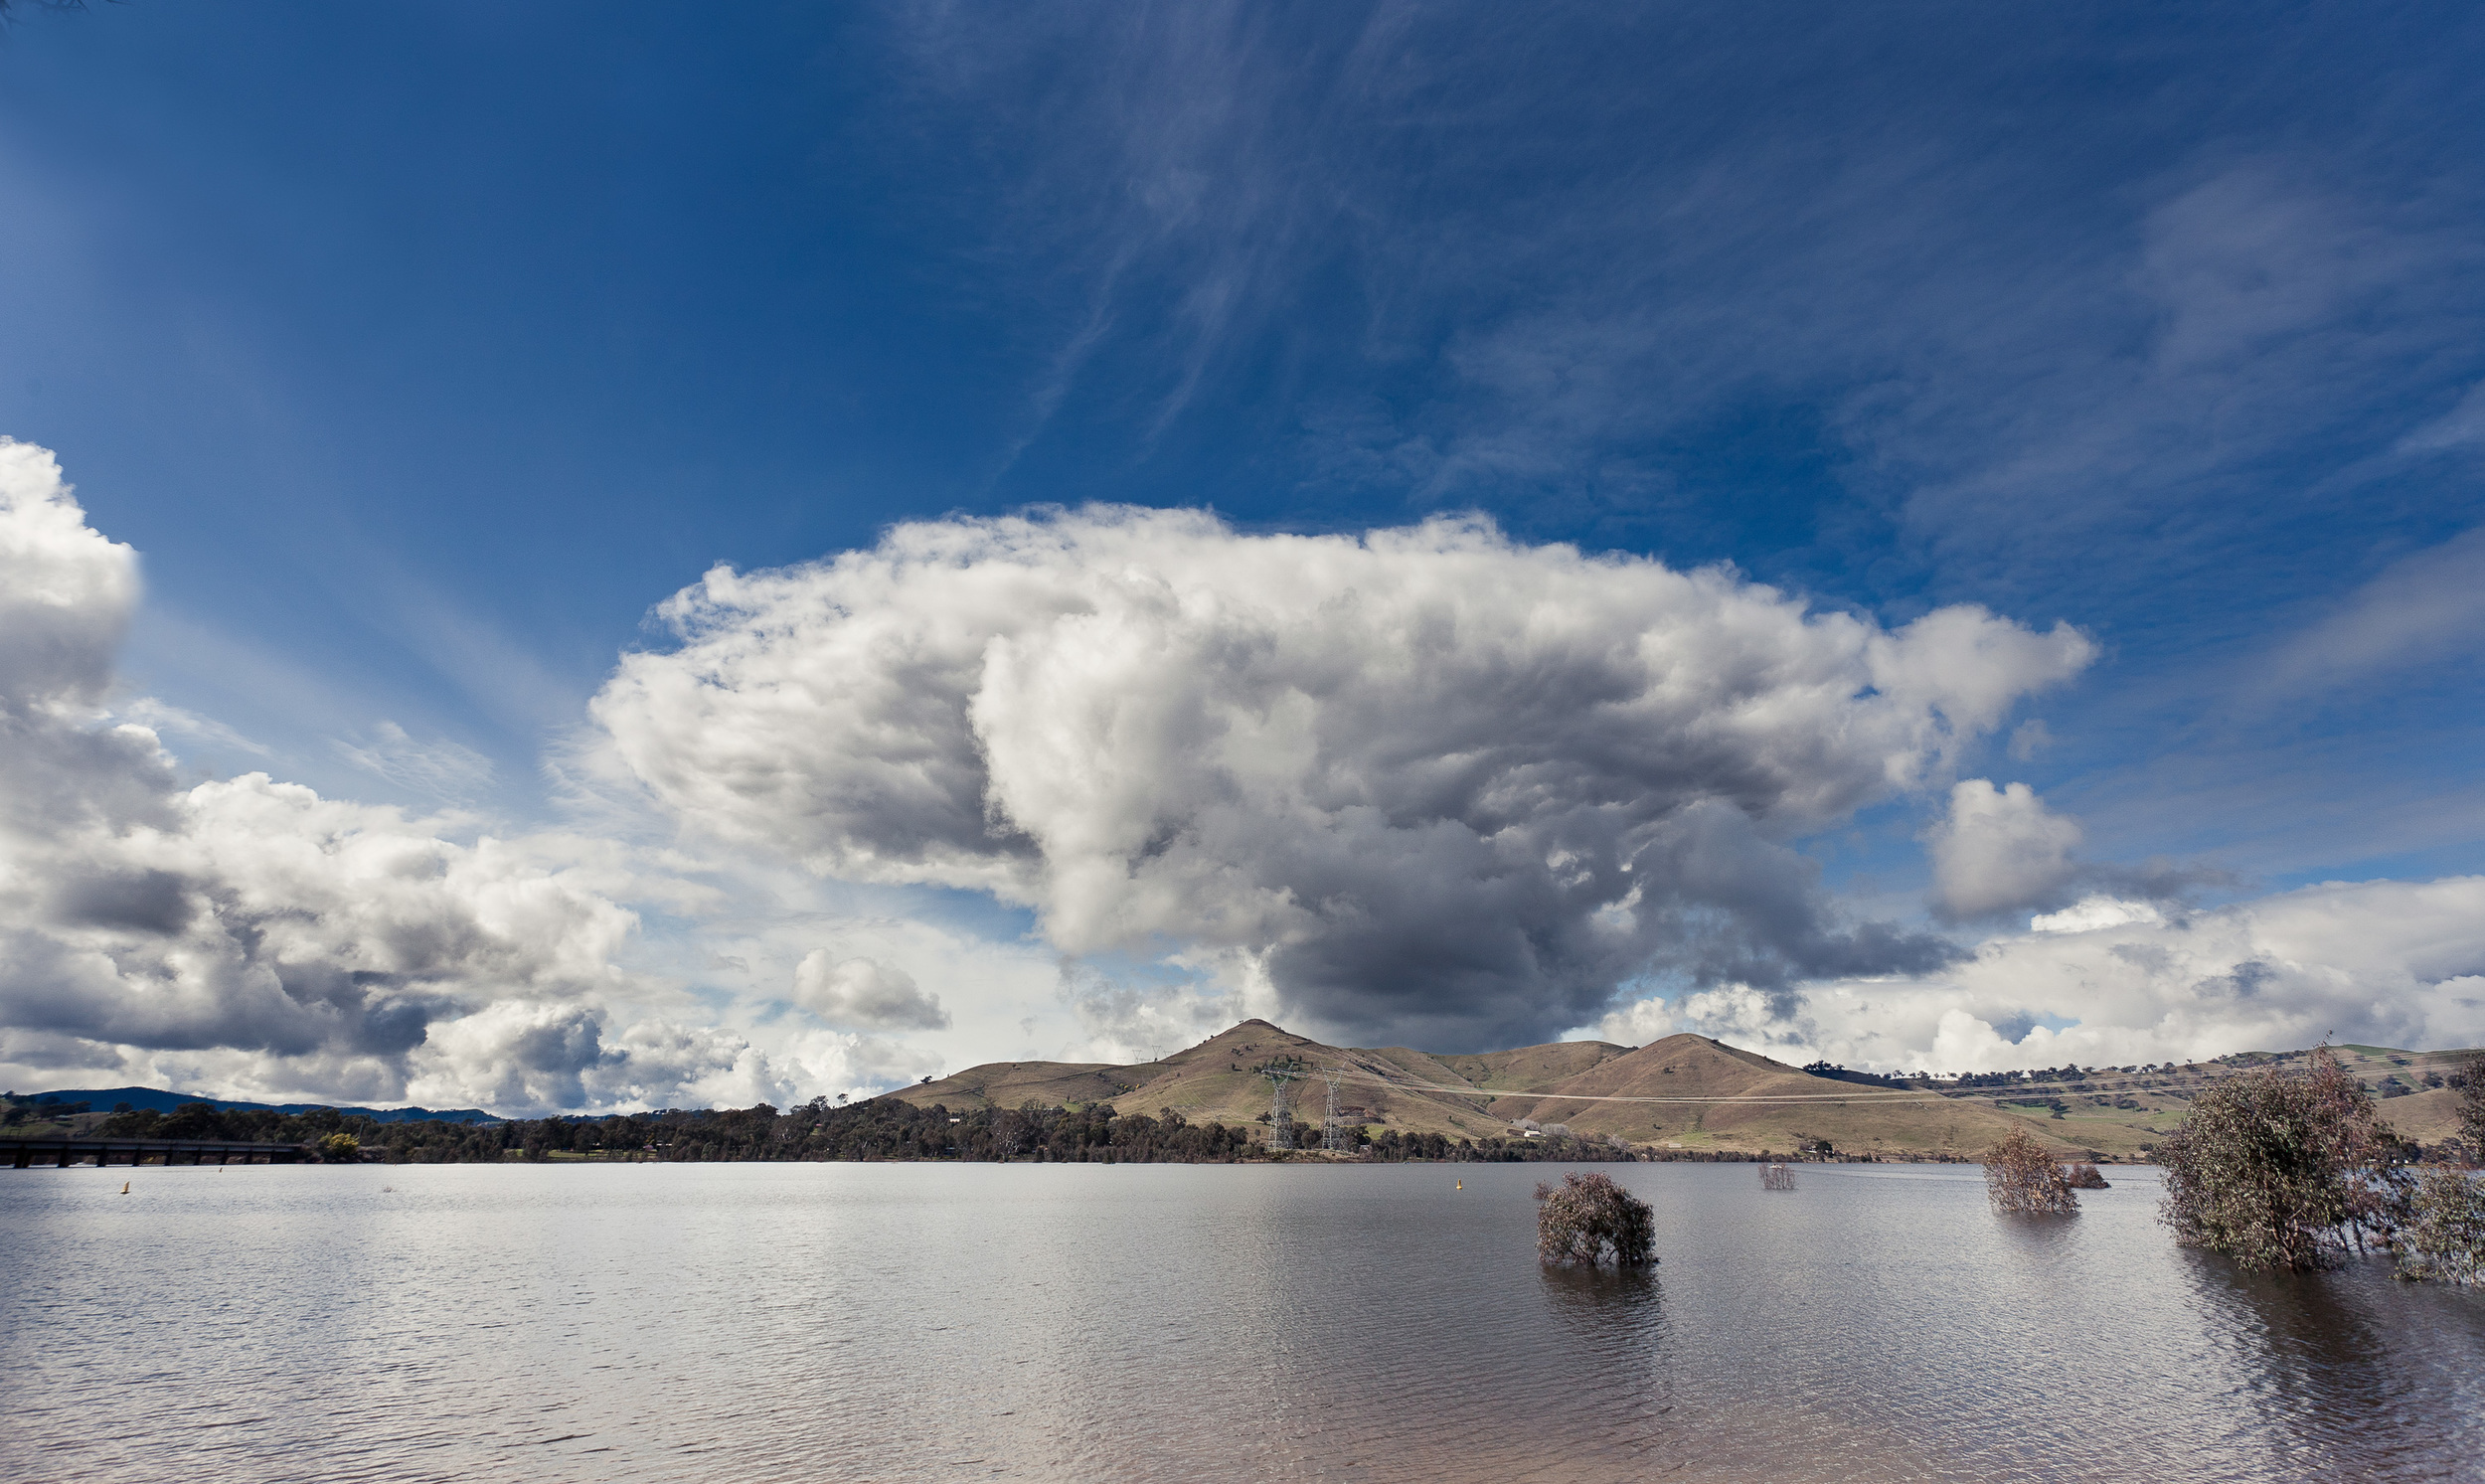 lakeeildon_mg_7506_RT.jpg